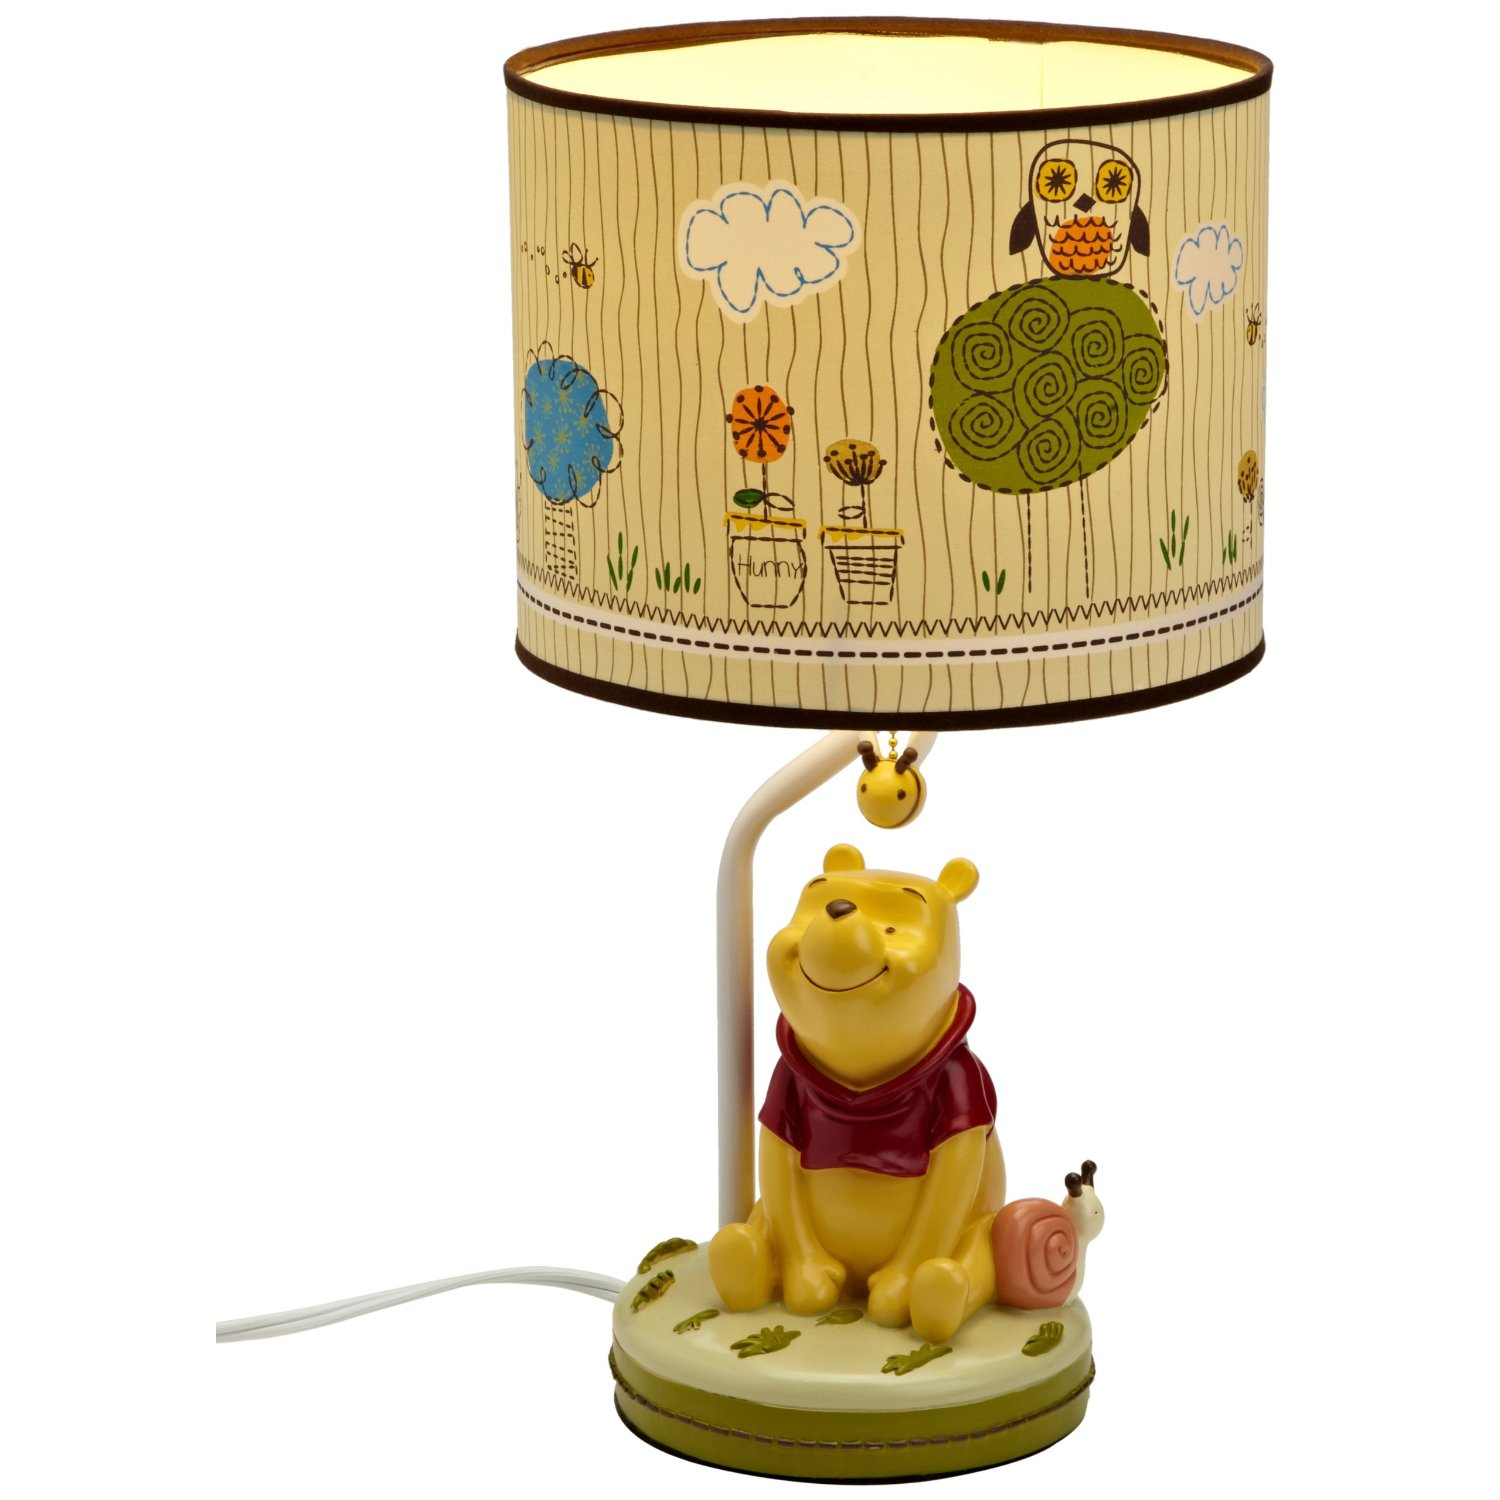 Lamp For Toddler Room Cute Lamps For Kids Rooms Lighting Interior Decorating Idea